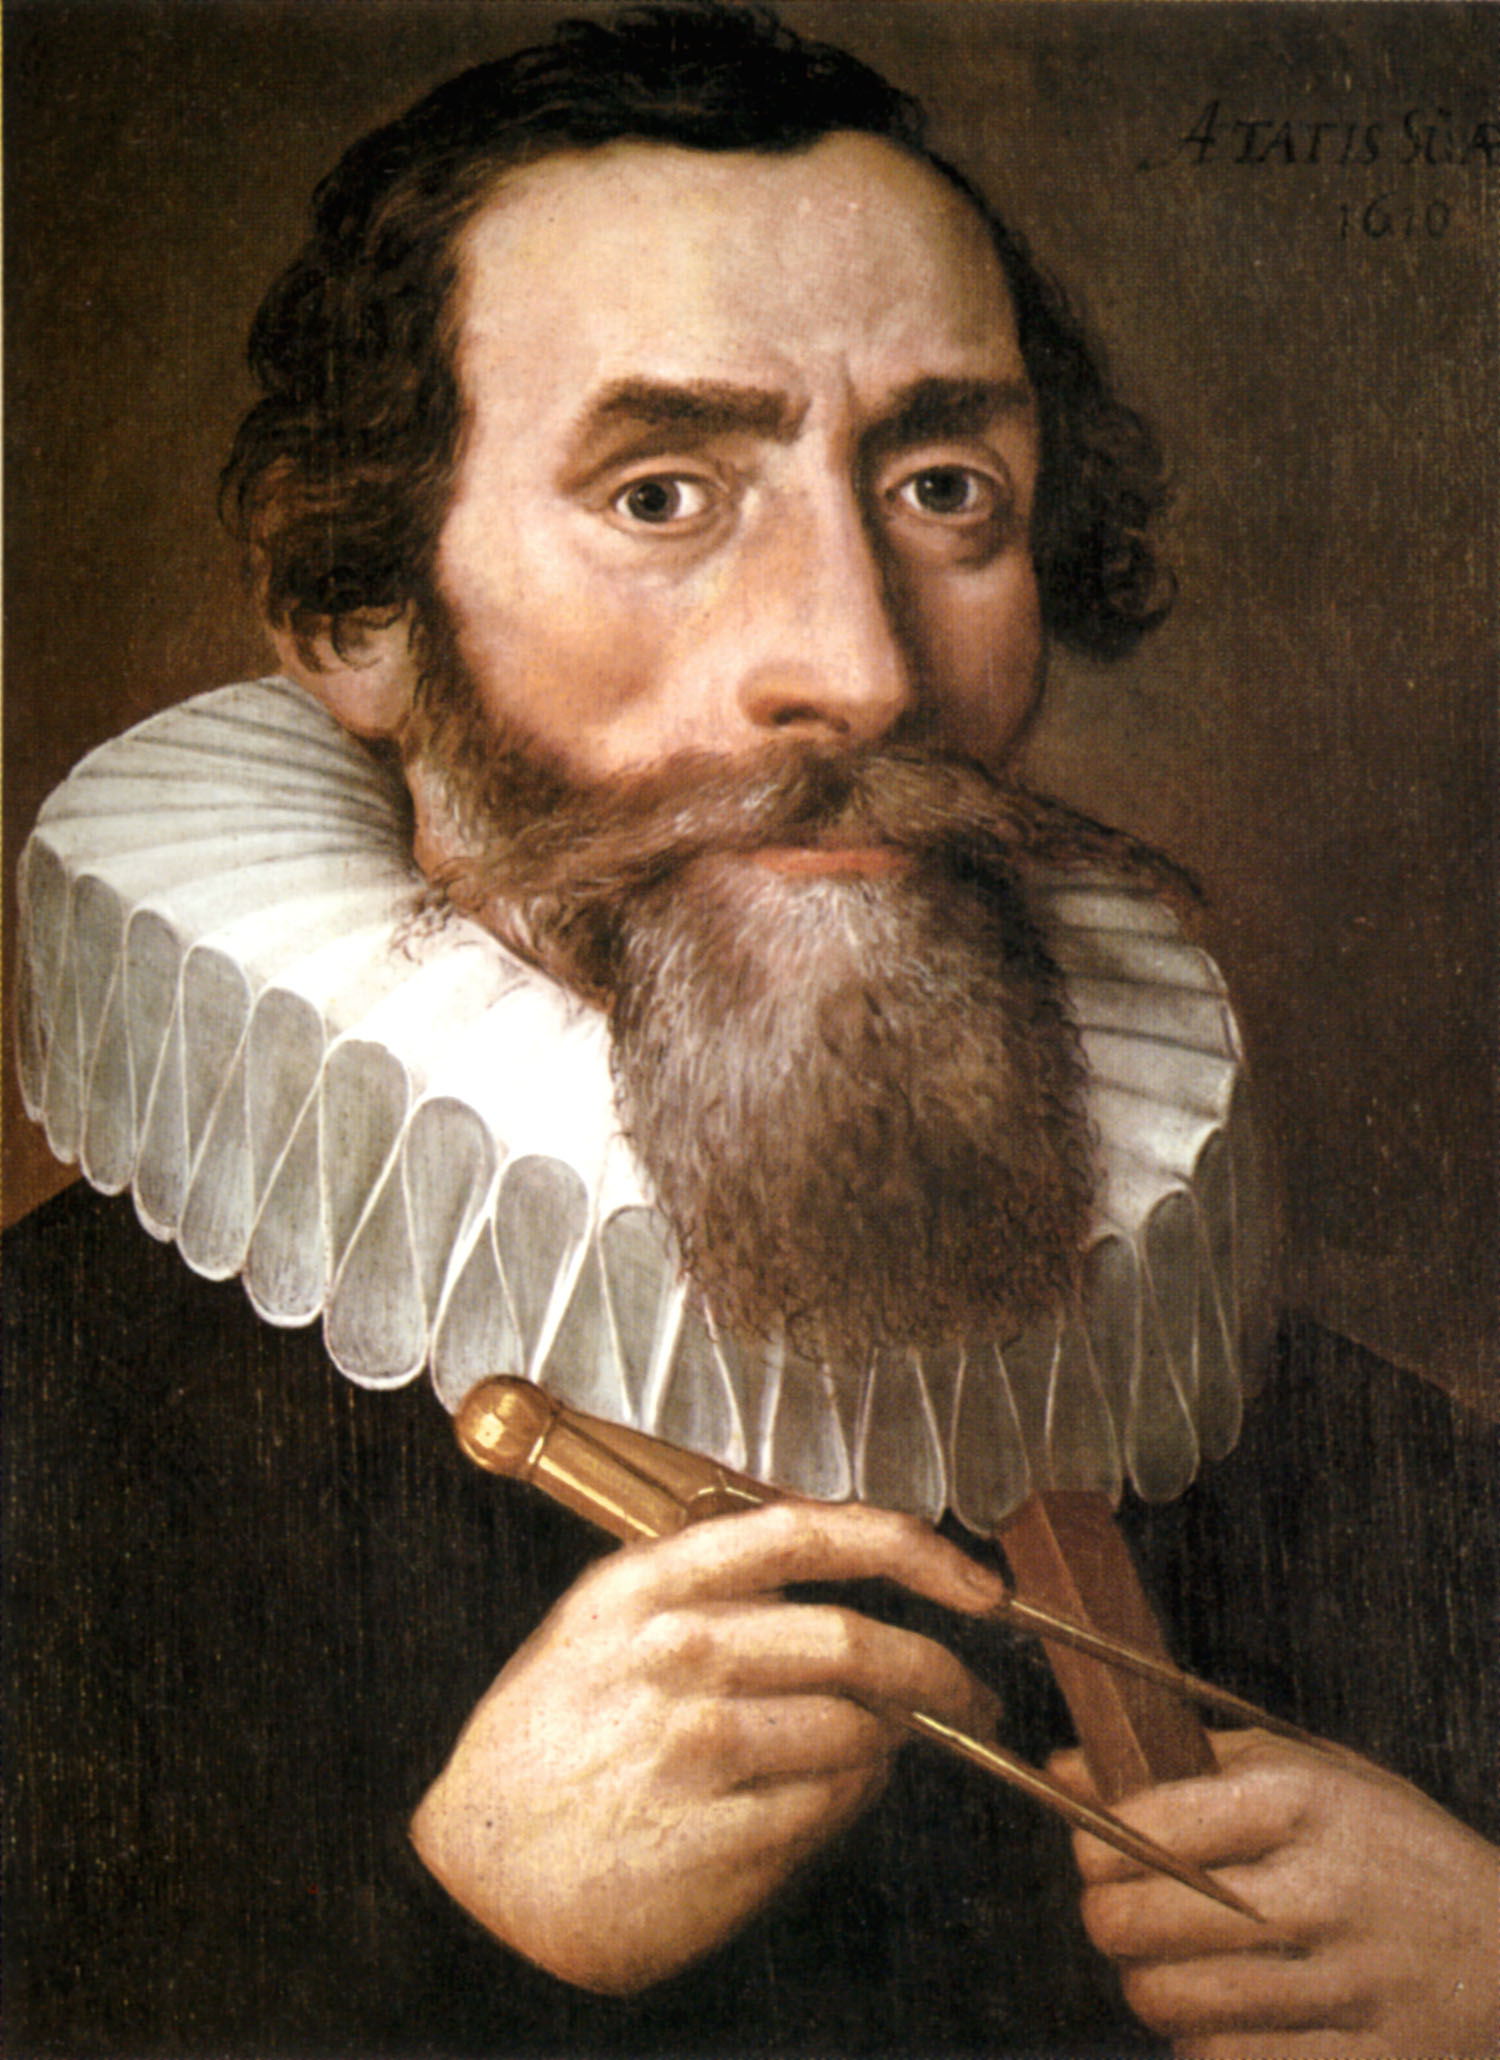 Johannes Kepler on Mathematics, Astronomy, Harmony and Worship